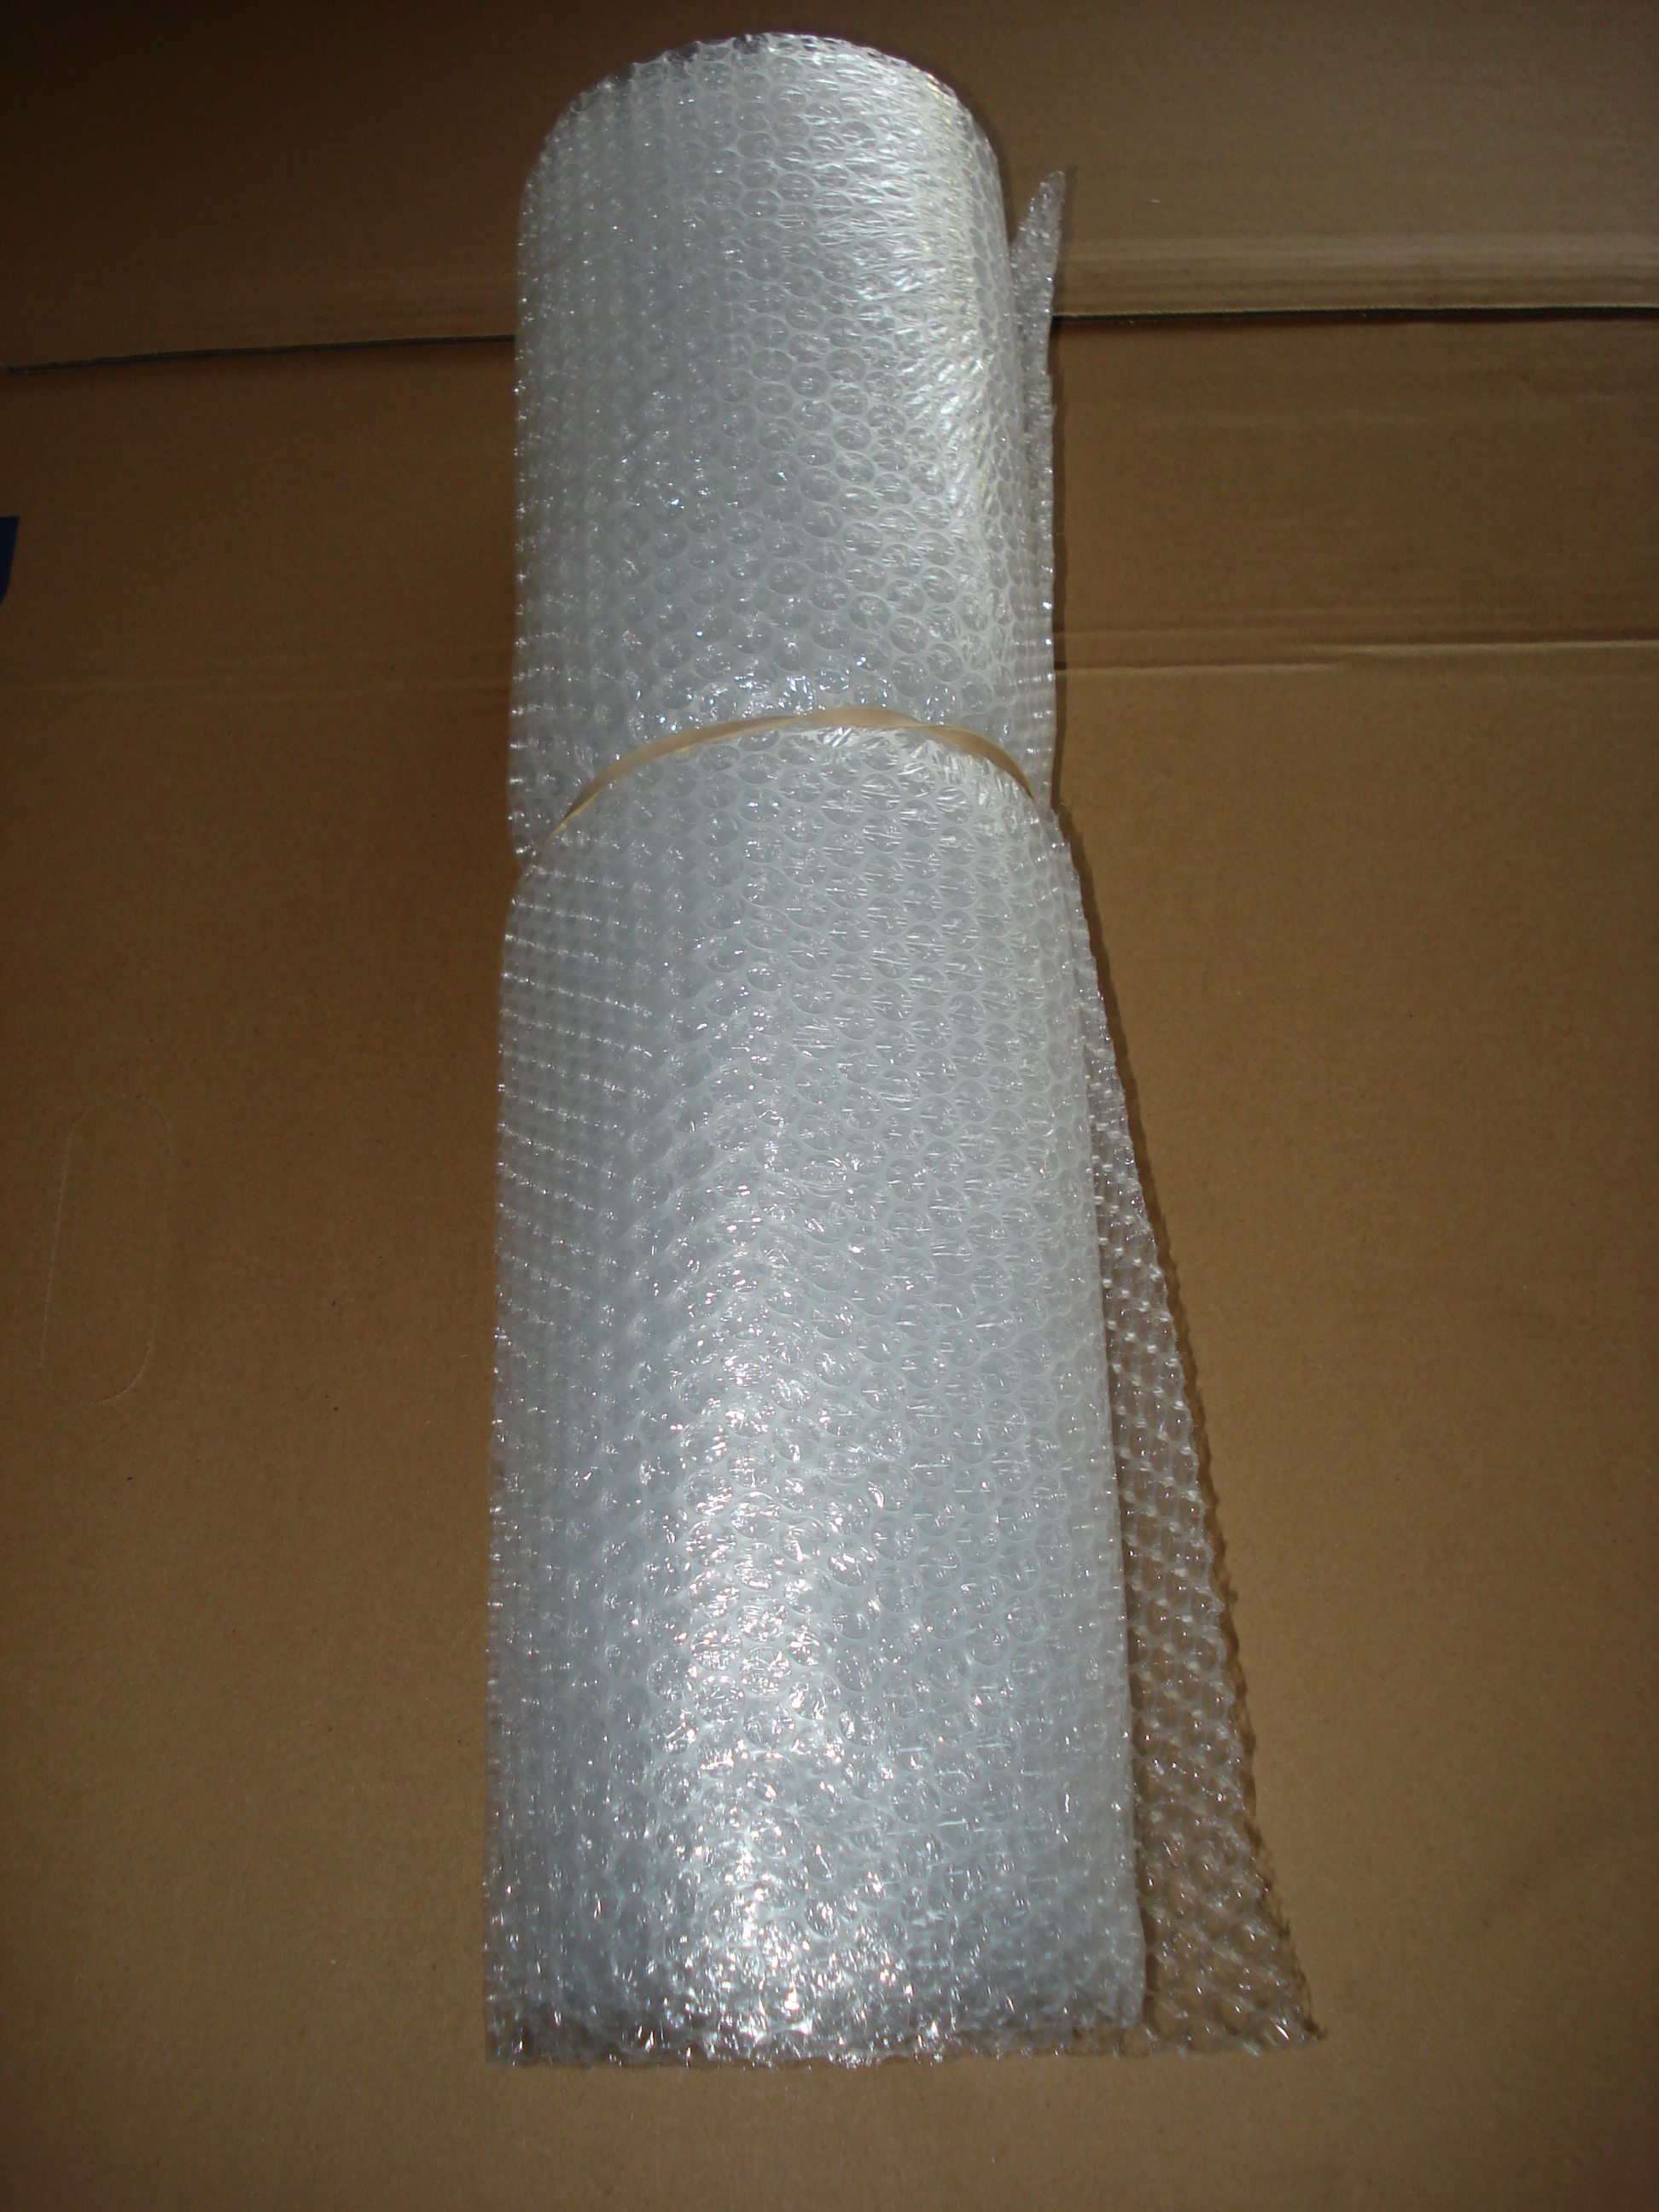 Bubble Wrap 5 meters (perferated 2.5 meters)